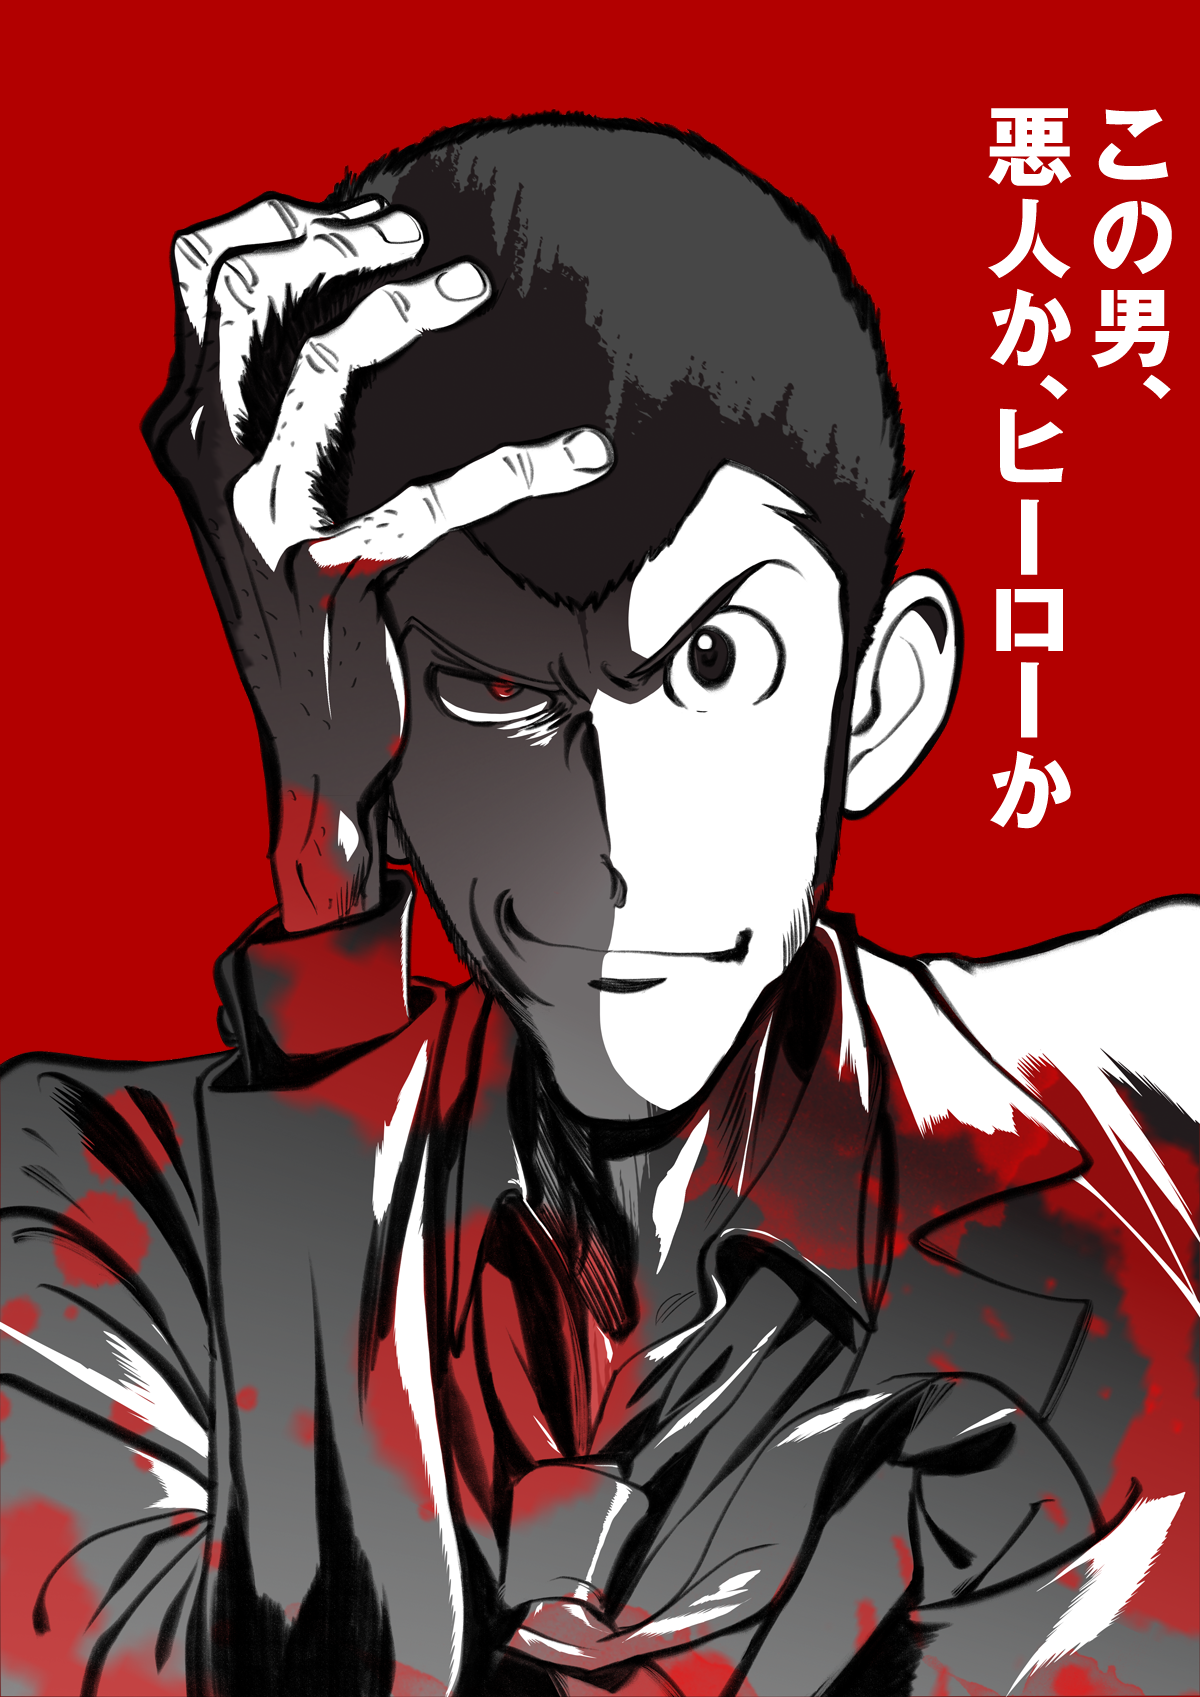 Lupin III: Part 6 - LUPIN THE 3rd PART 6